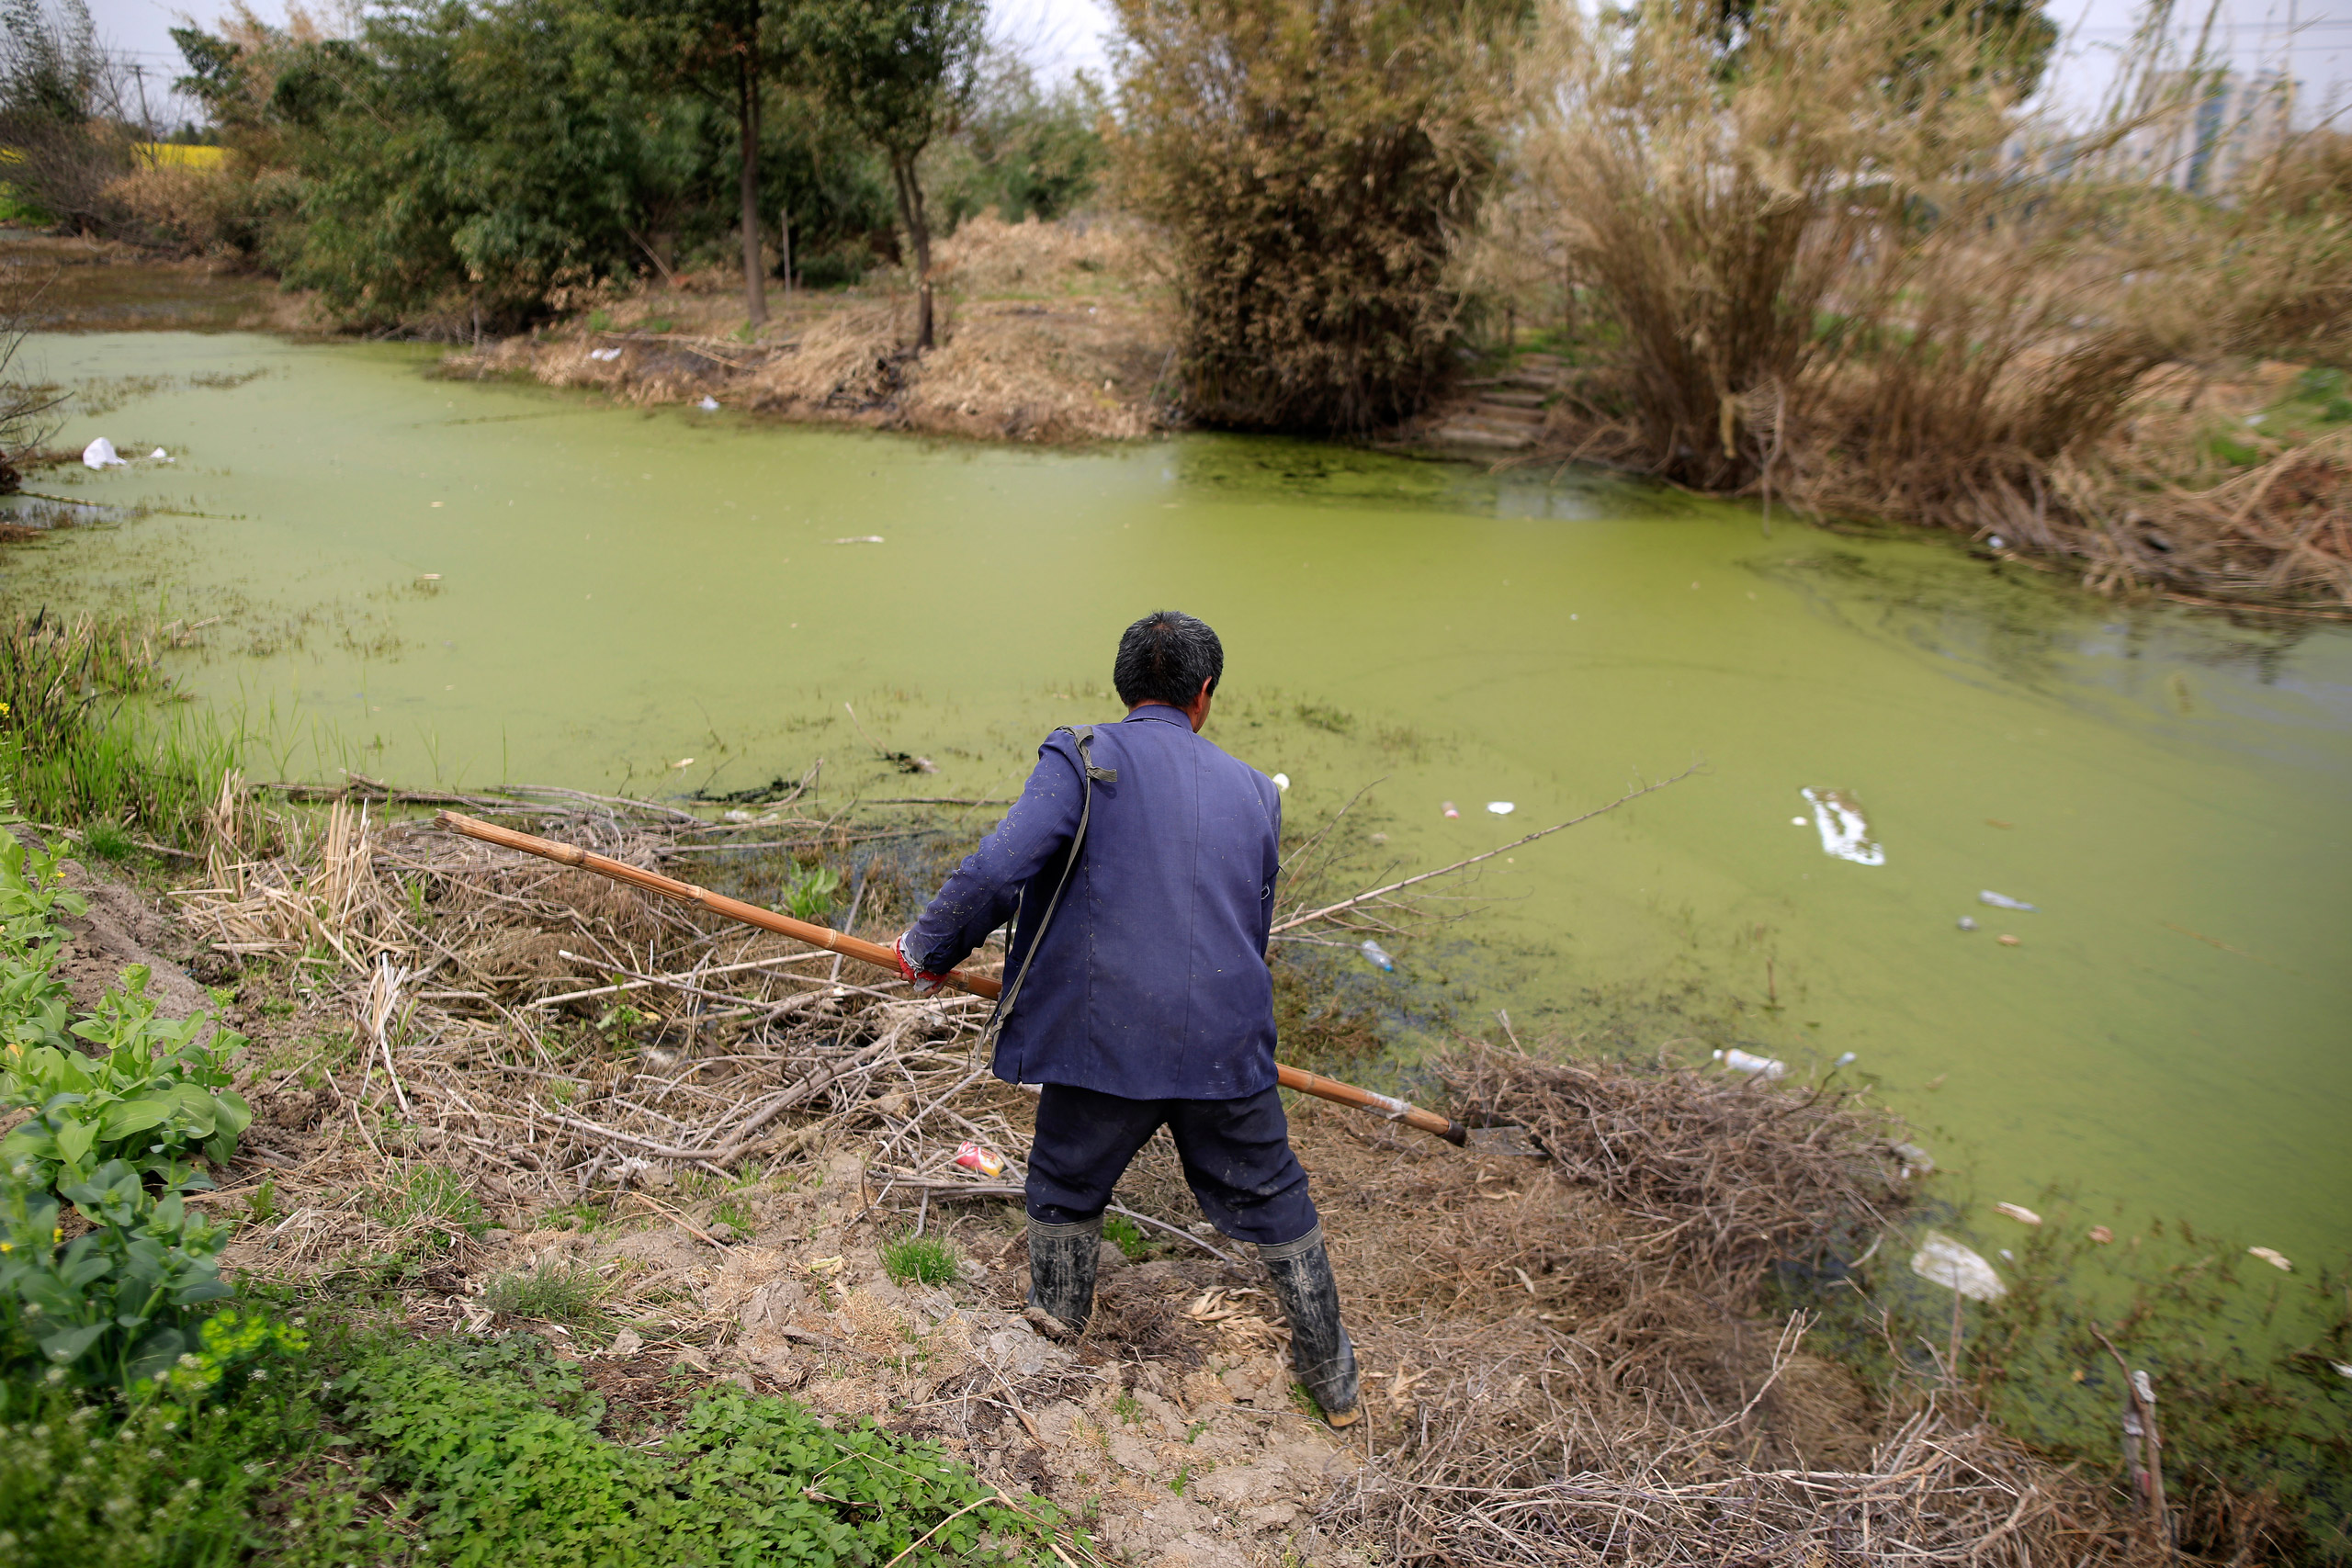 A farmer works on a polluted river in Shanghai, China, on Mar. 21, 2016.